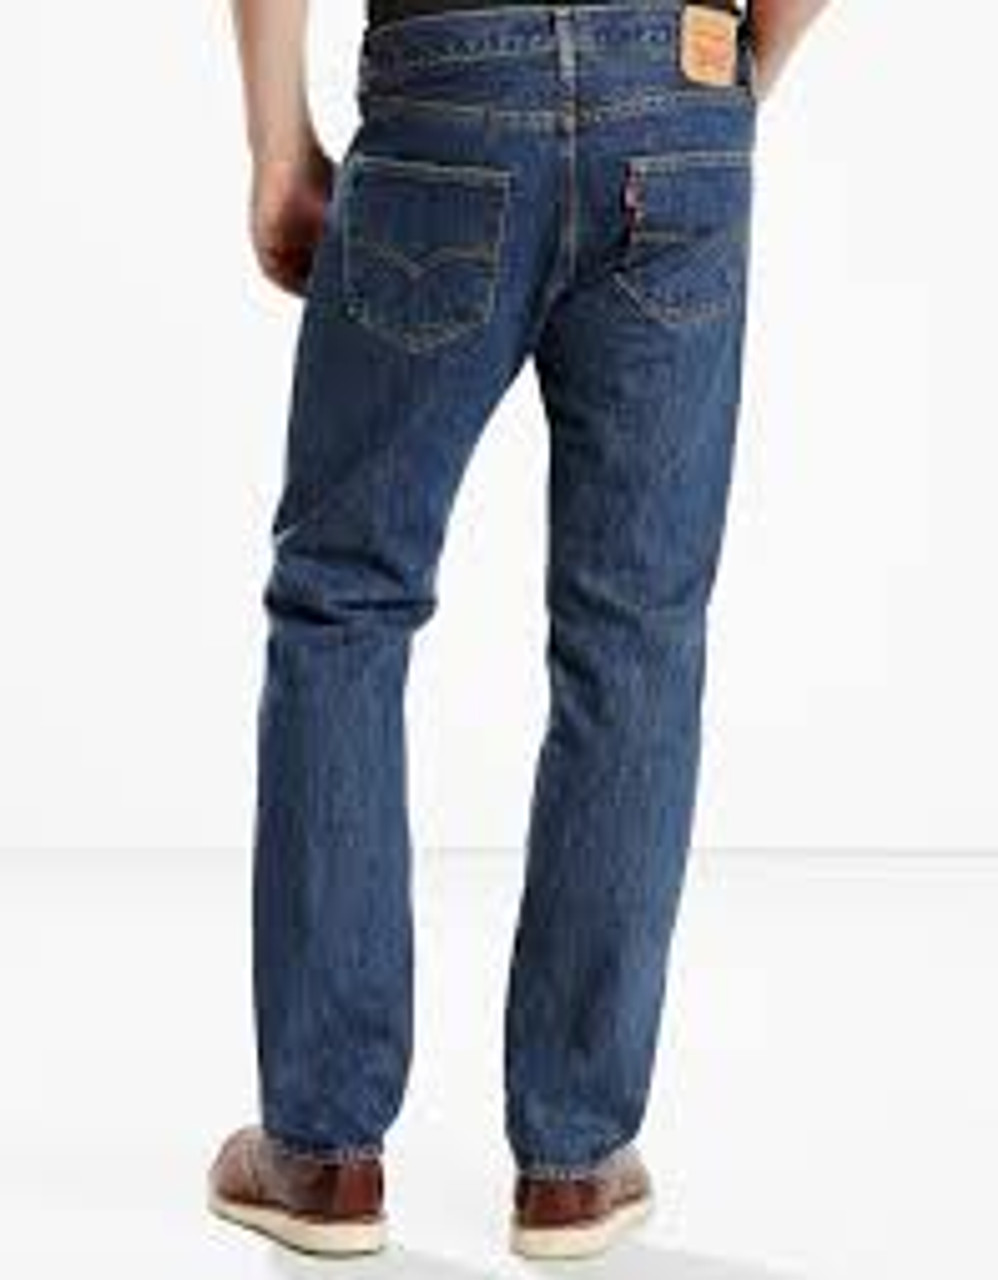 Levi's 501 Pre-Washed Big & Tall